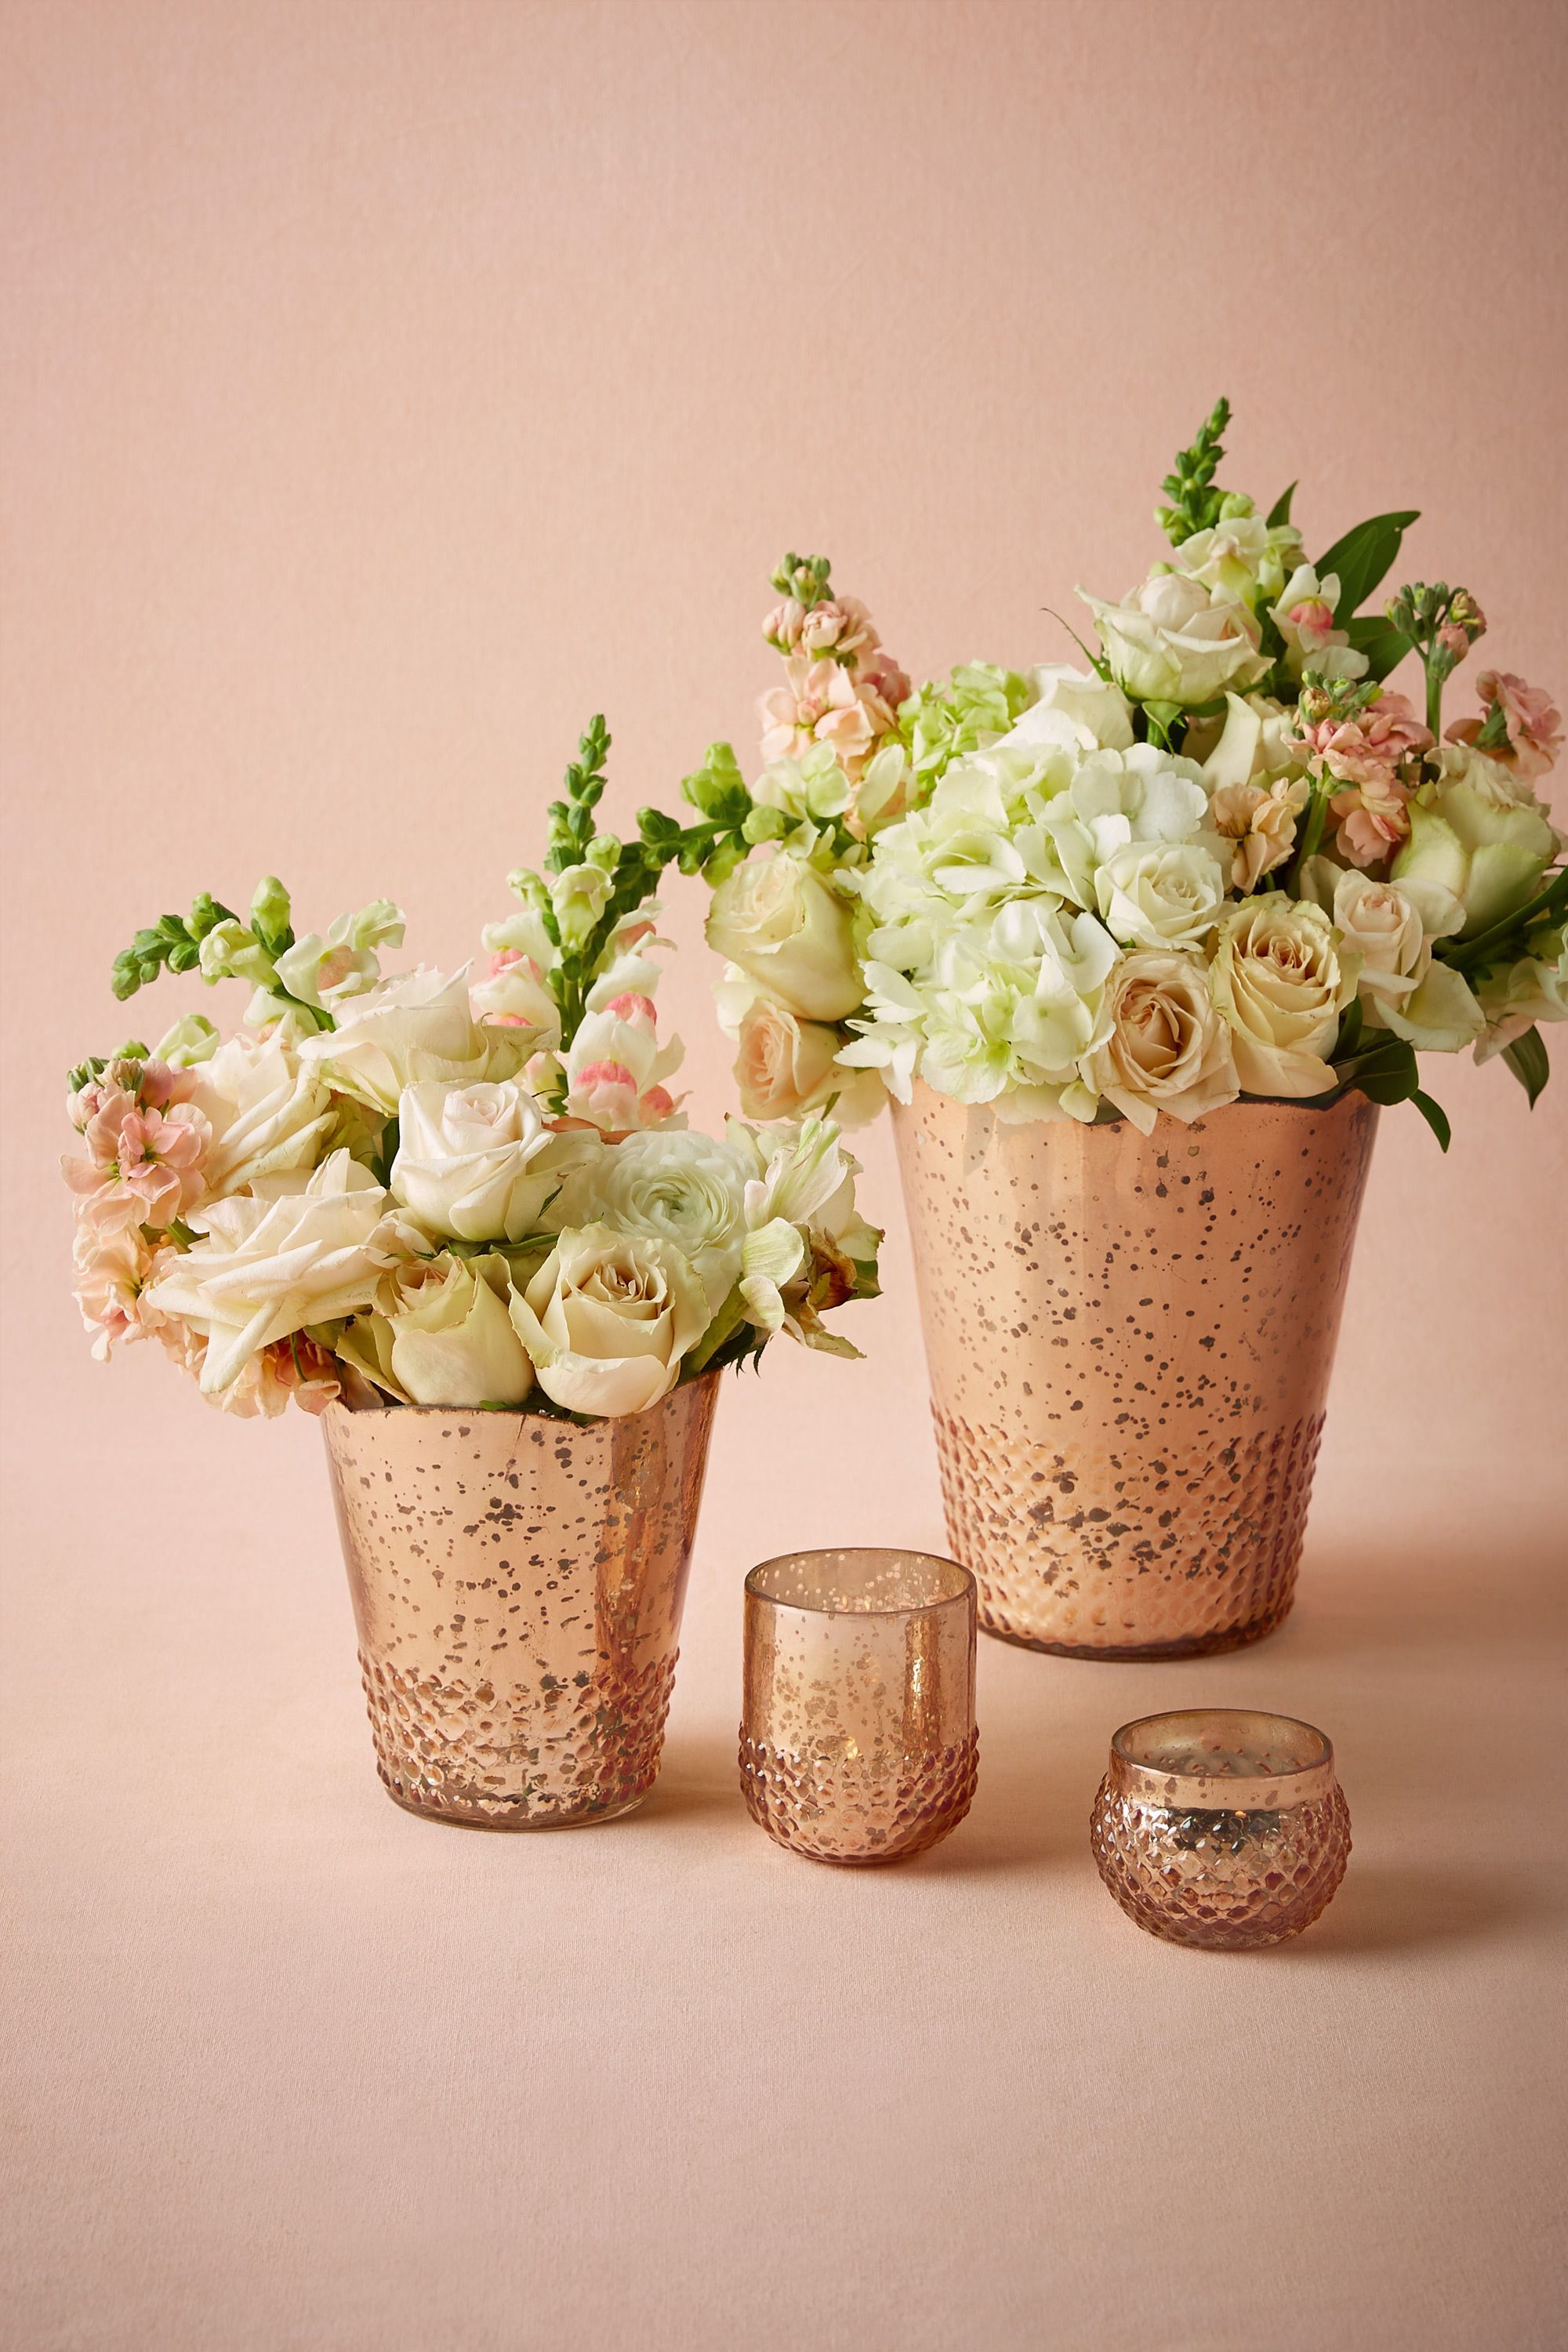 wedding vases The Perfect Palette is a wedding resource dedicated to helping couples find the perfect color palette